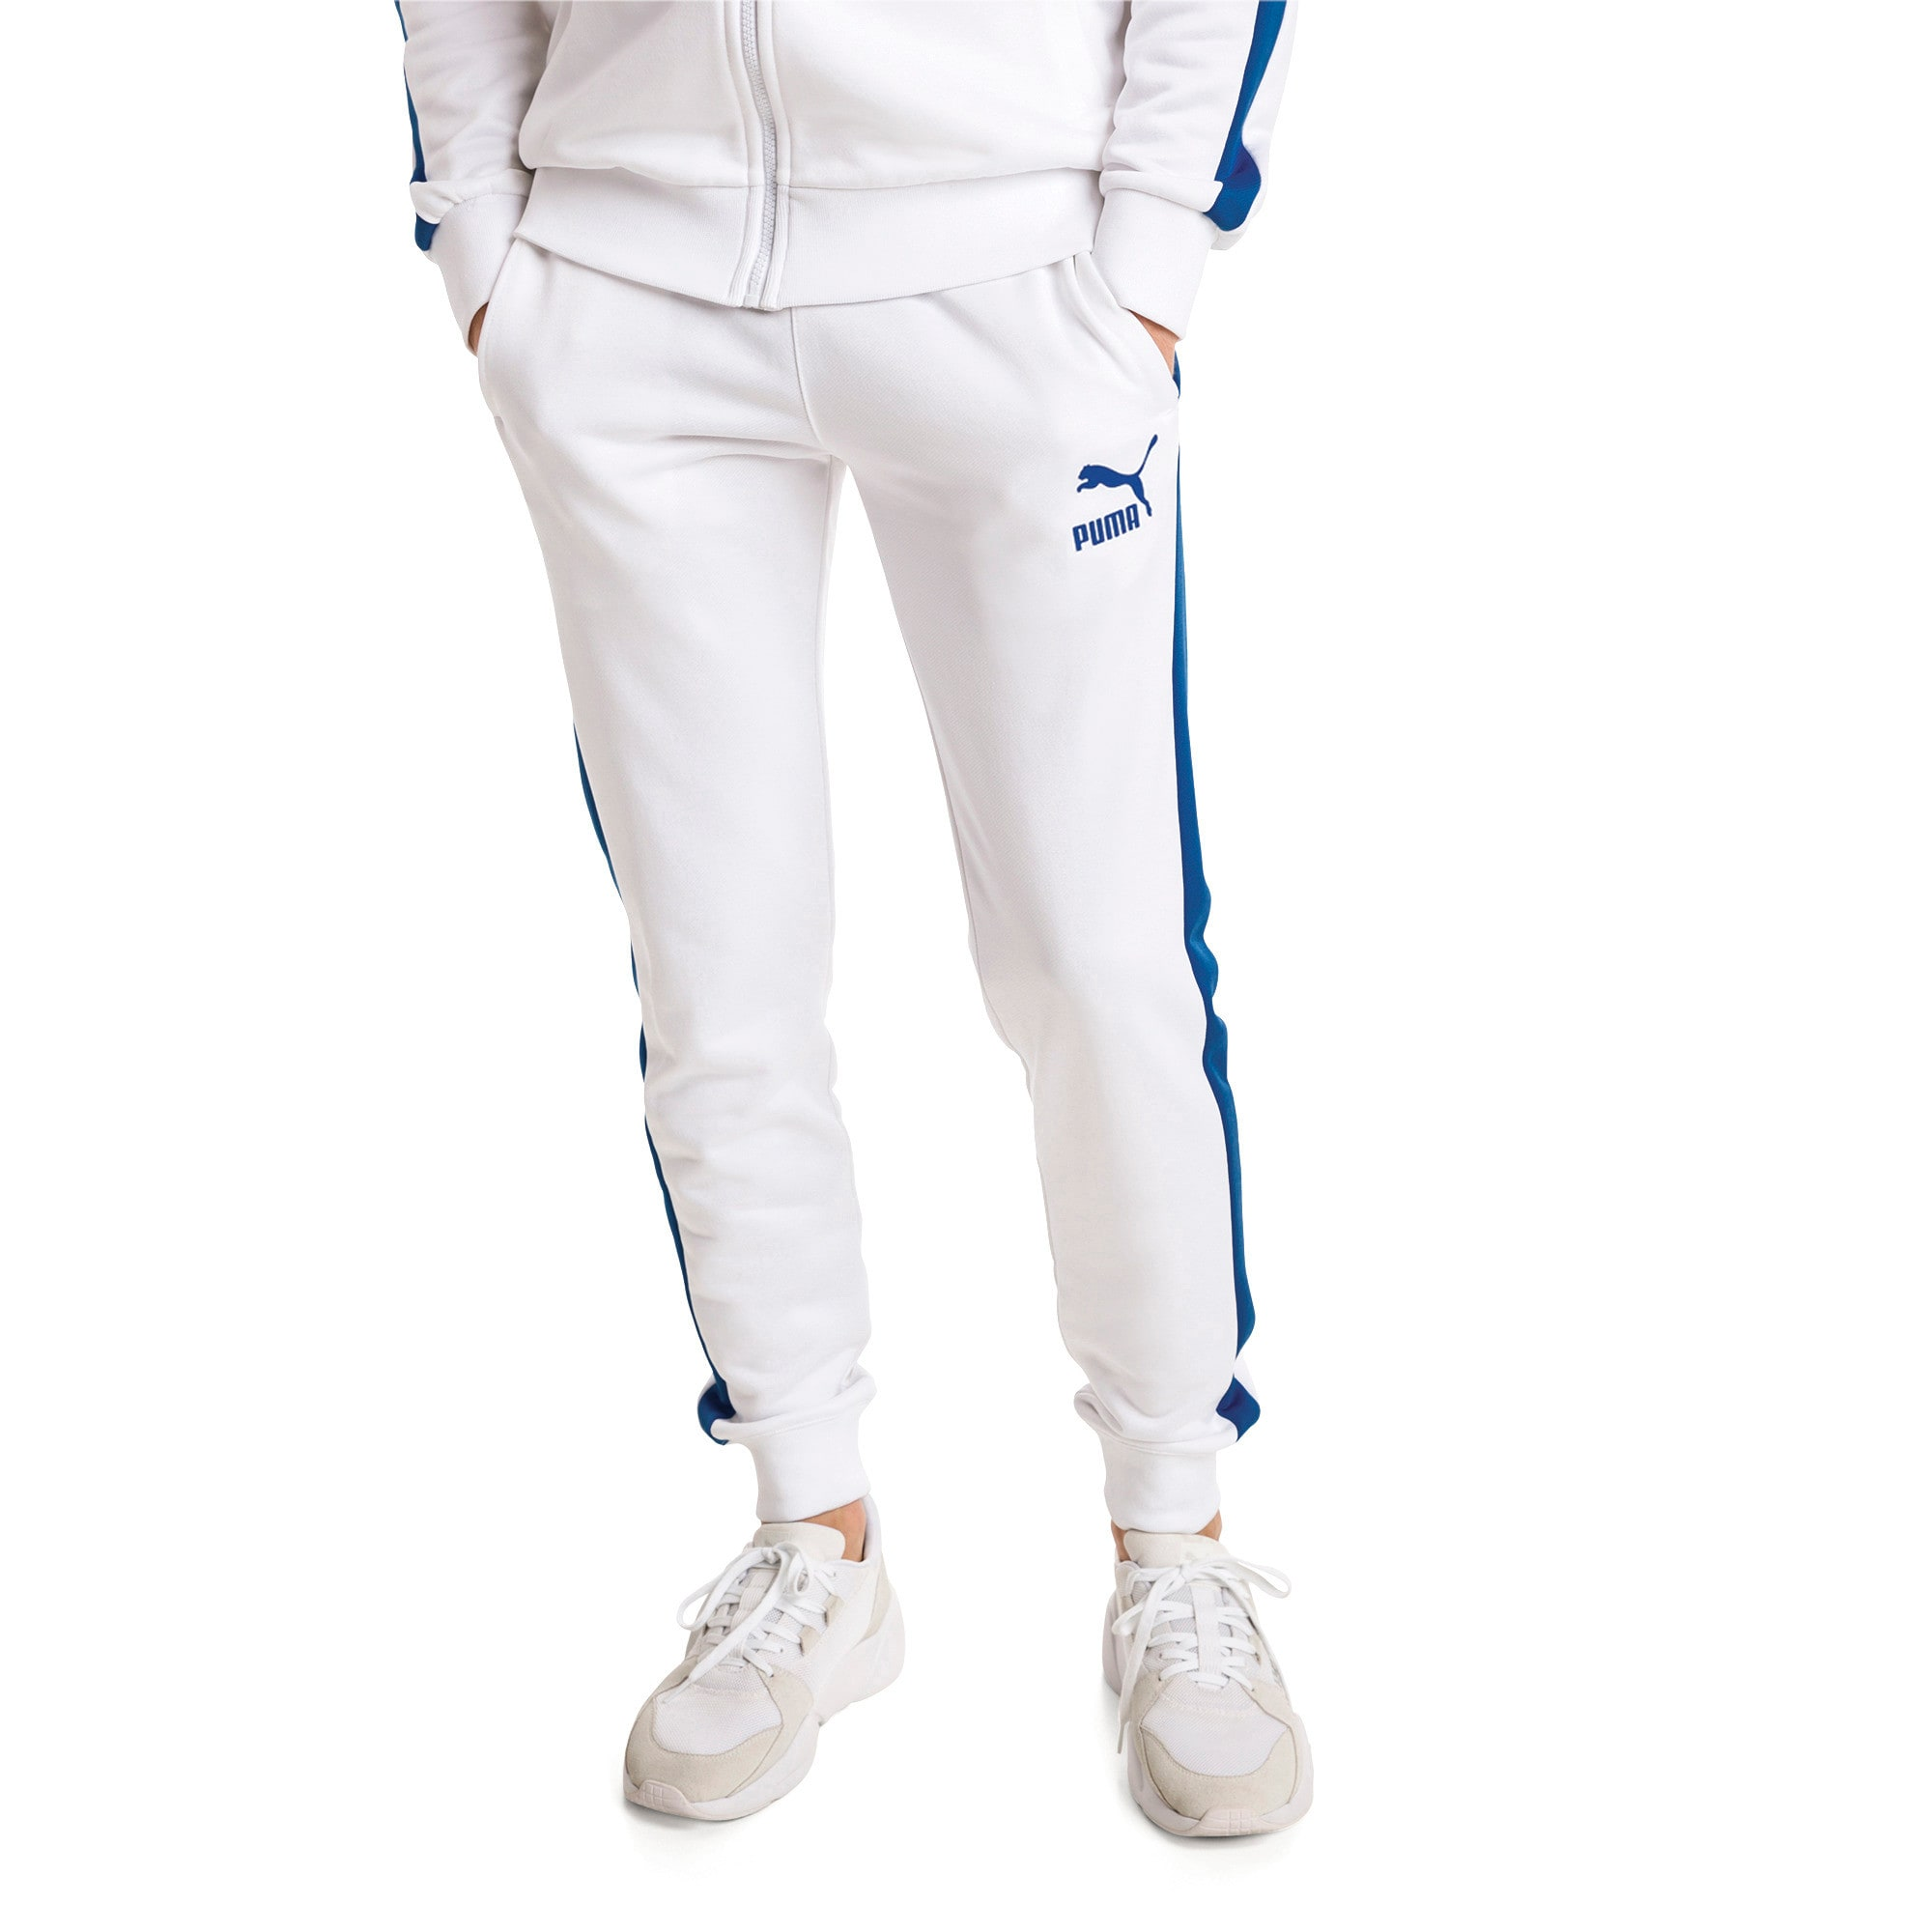 Thumbnail 2 of Iconic T7 Herren Gestrickte Sweatpants, Puma White, medium